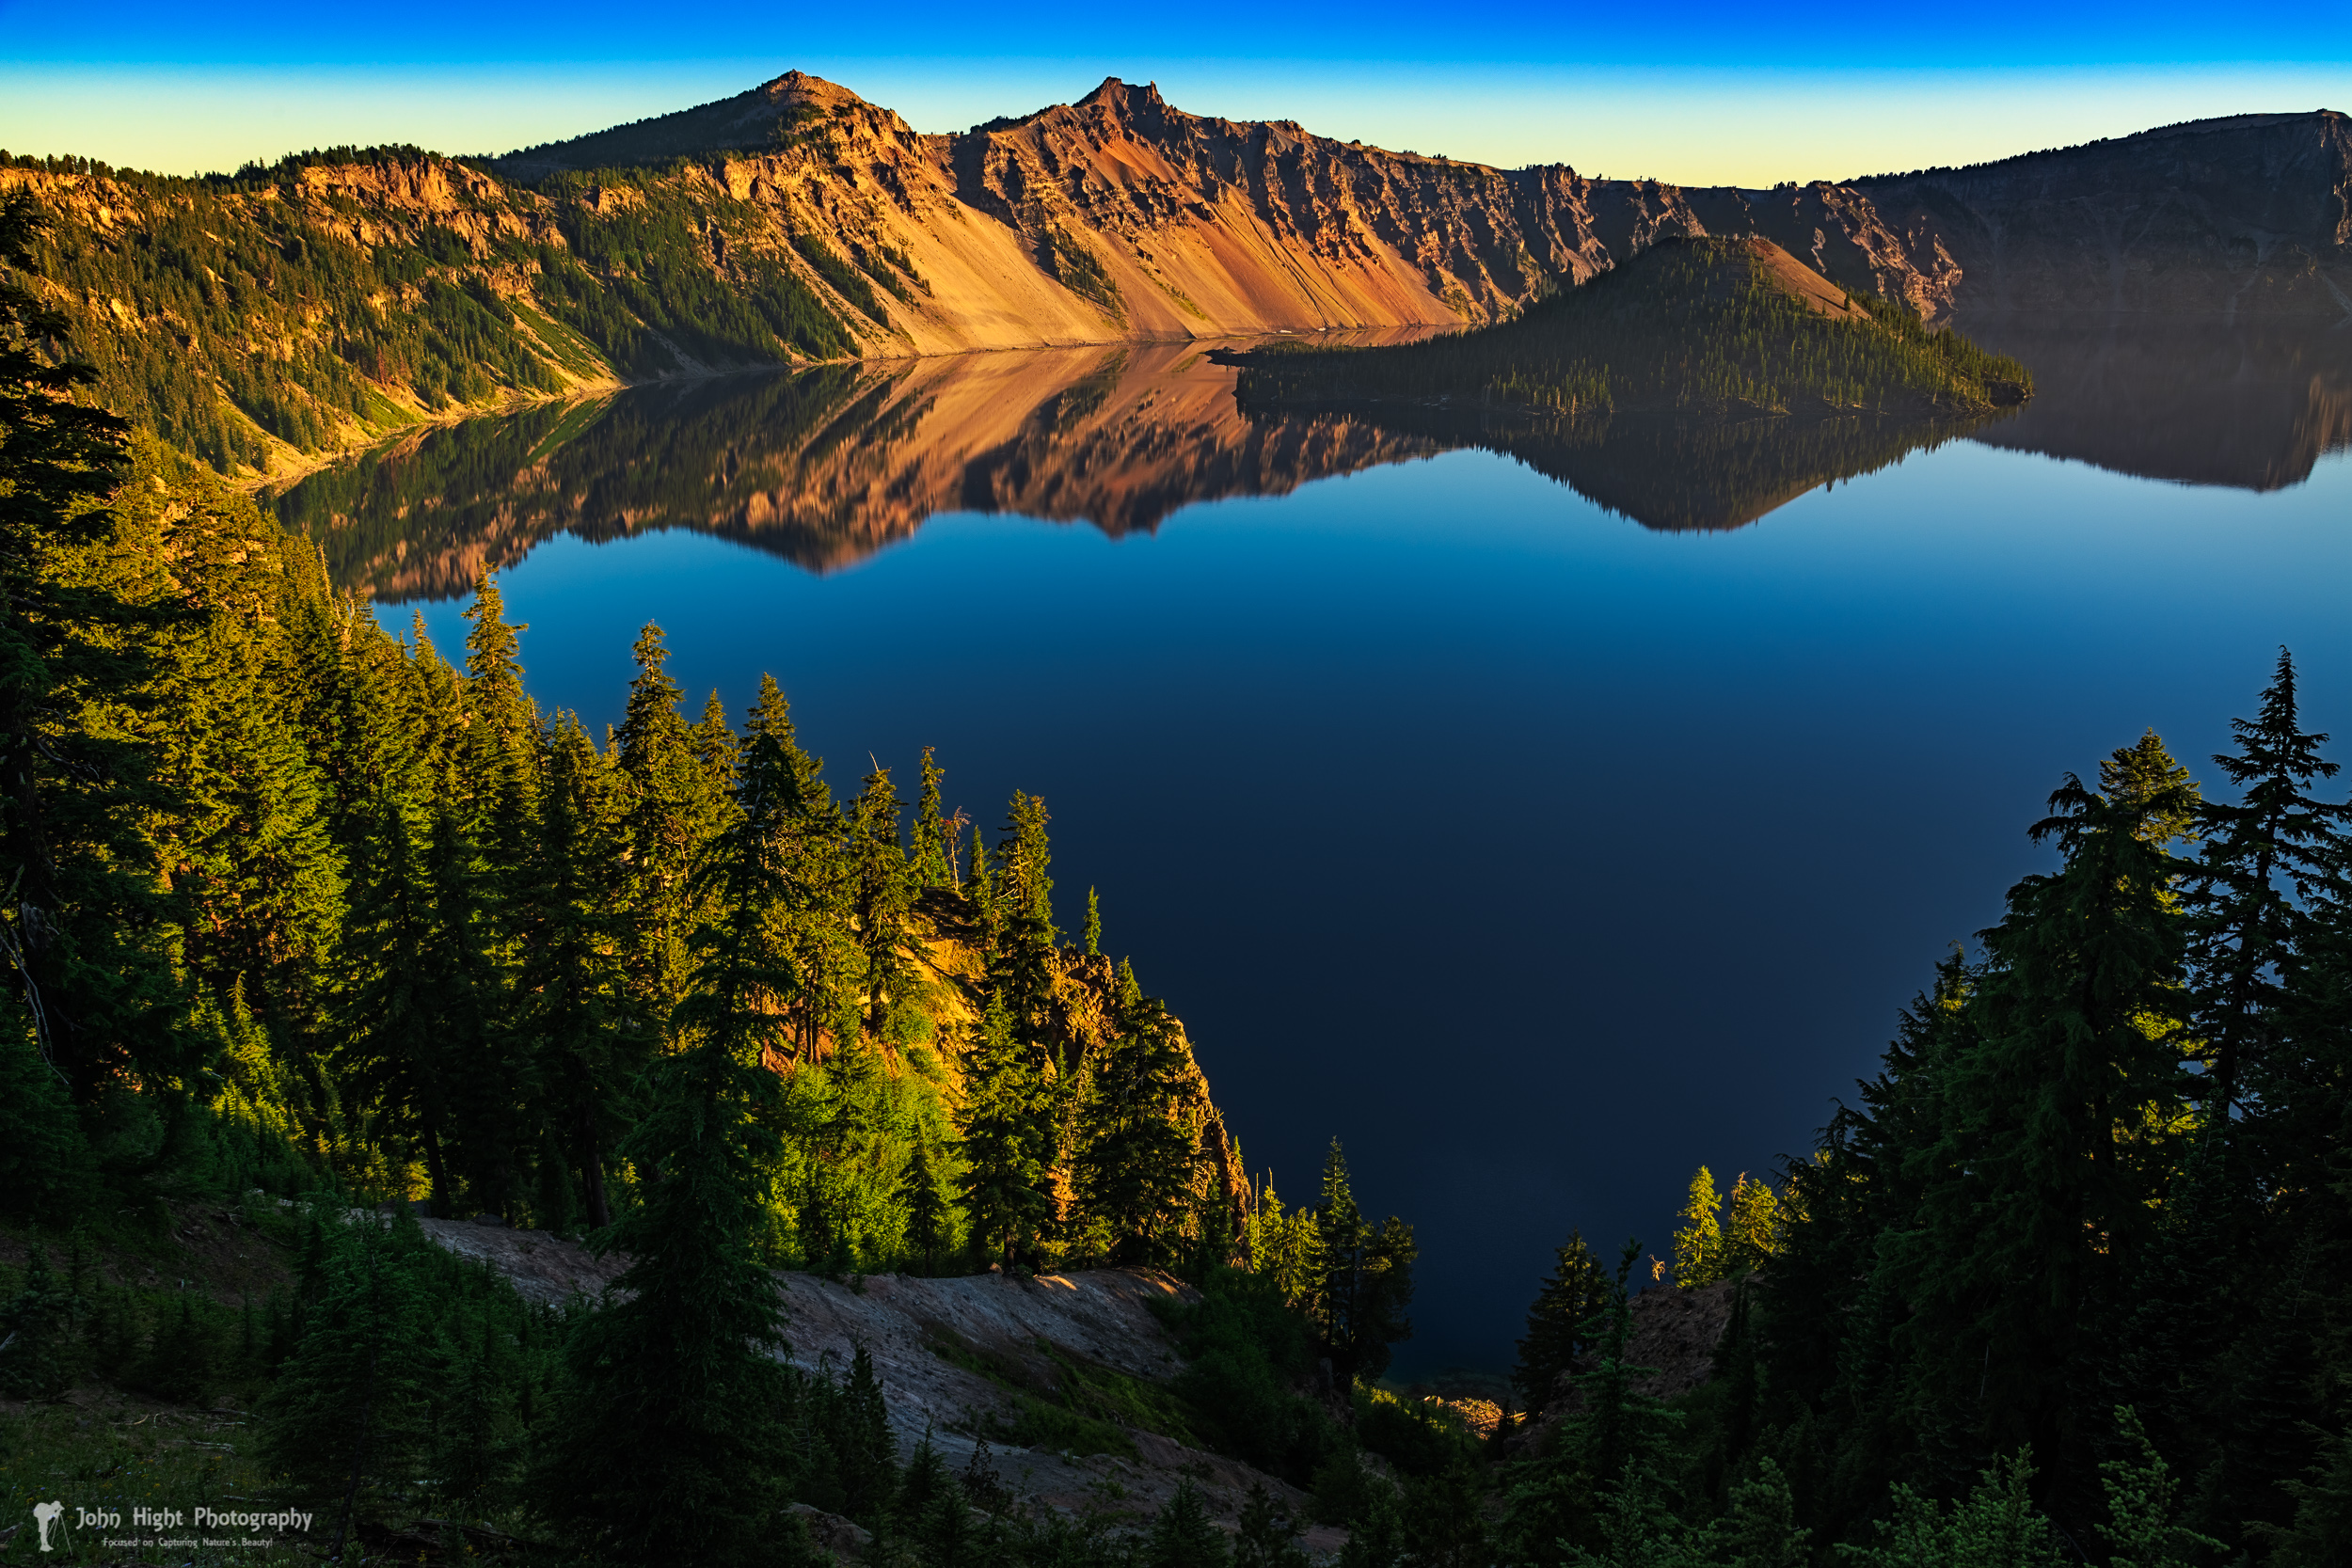 Morning Reflection on Crater Lake